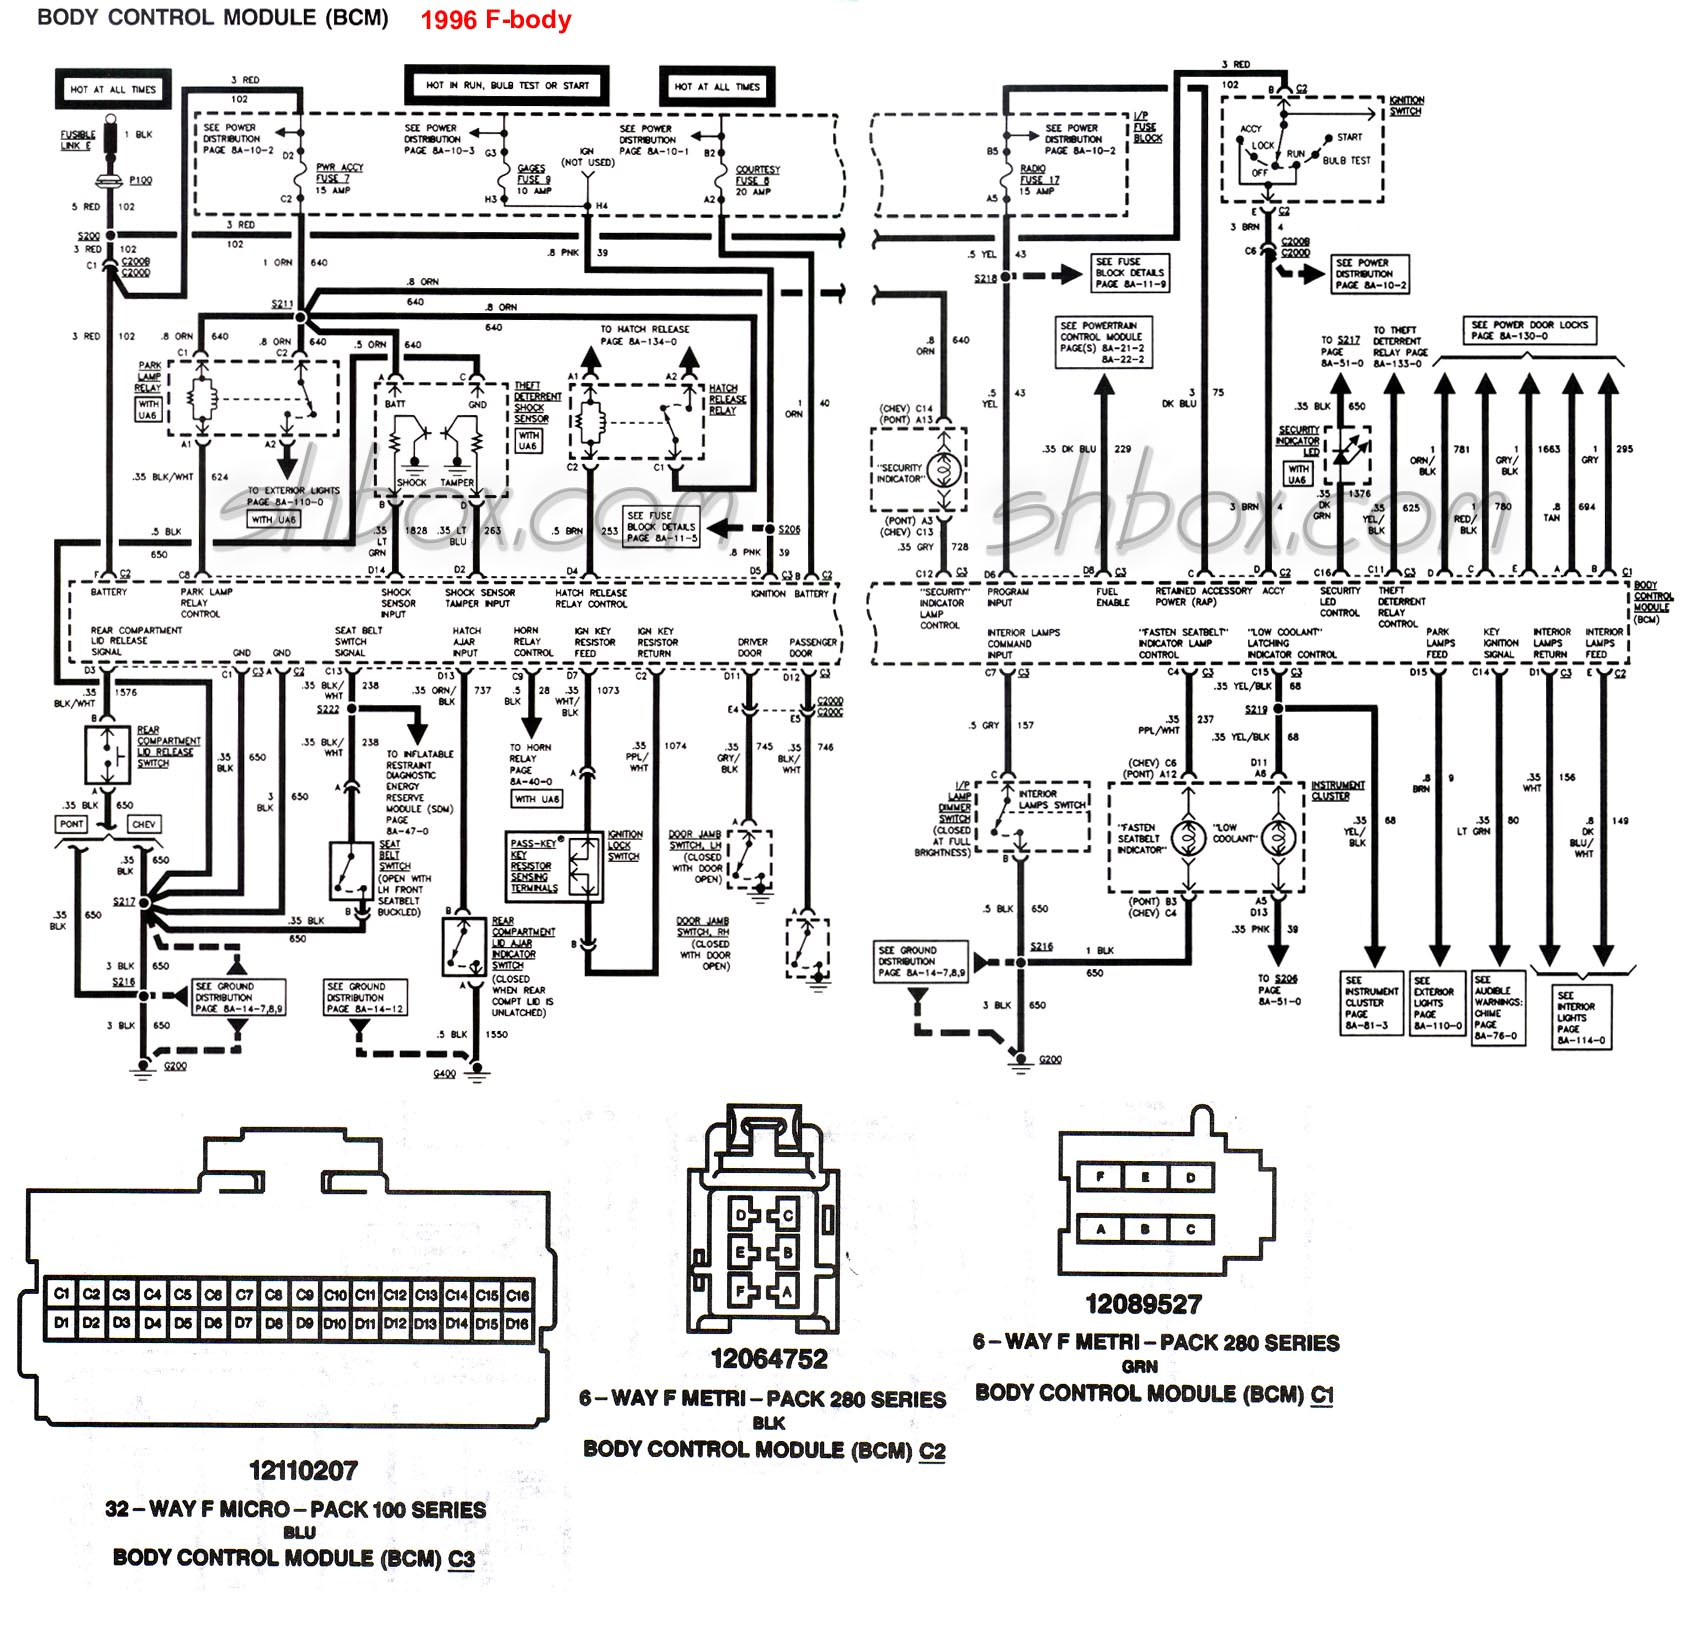 Lt1 Tach Wiring Library. Chevy Colorado Bcm Wiring Diagram Get Free About 1994 Lt1 Harness 94. Wiring. 94 Lt1 Wiring Harness Diagram At Scoala.co